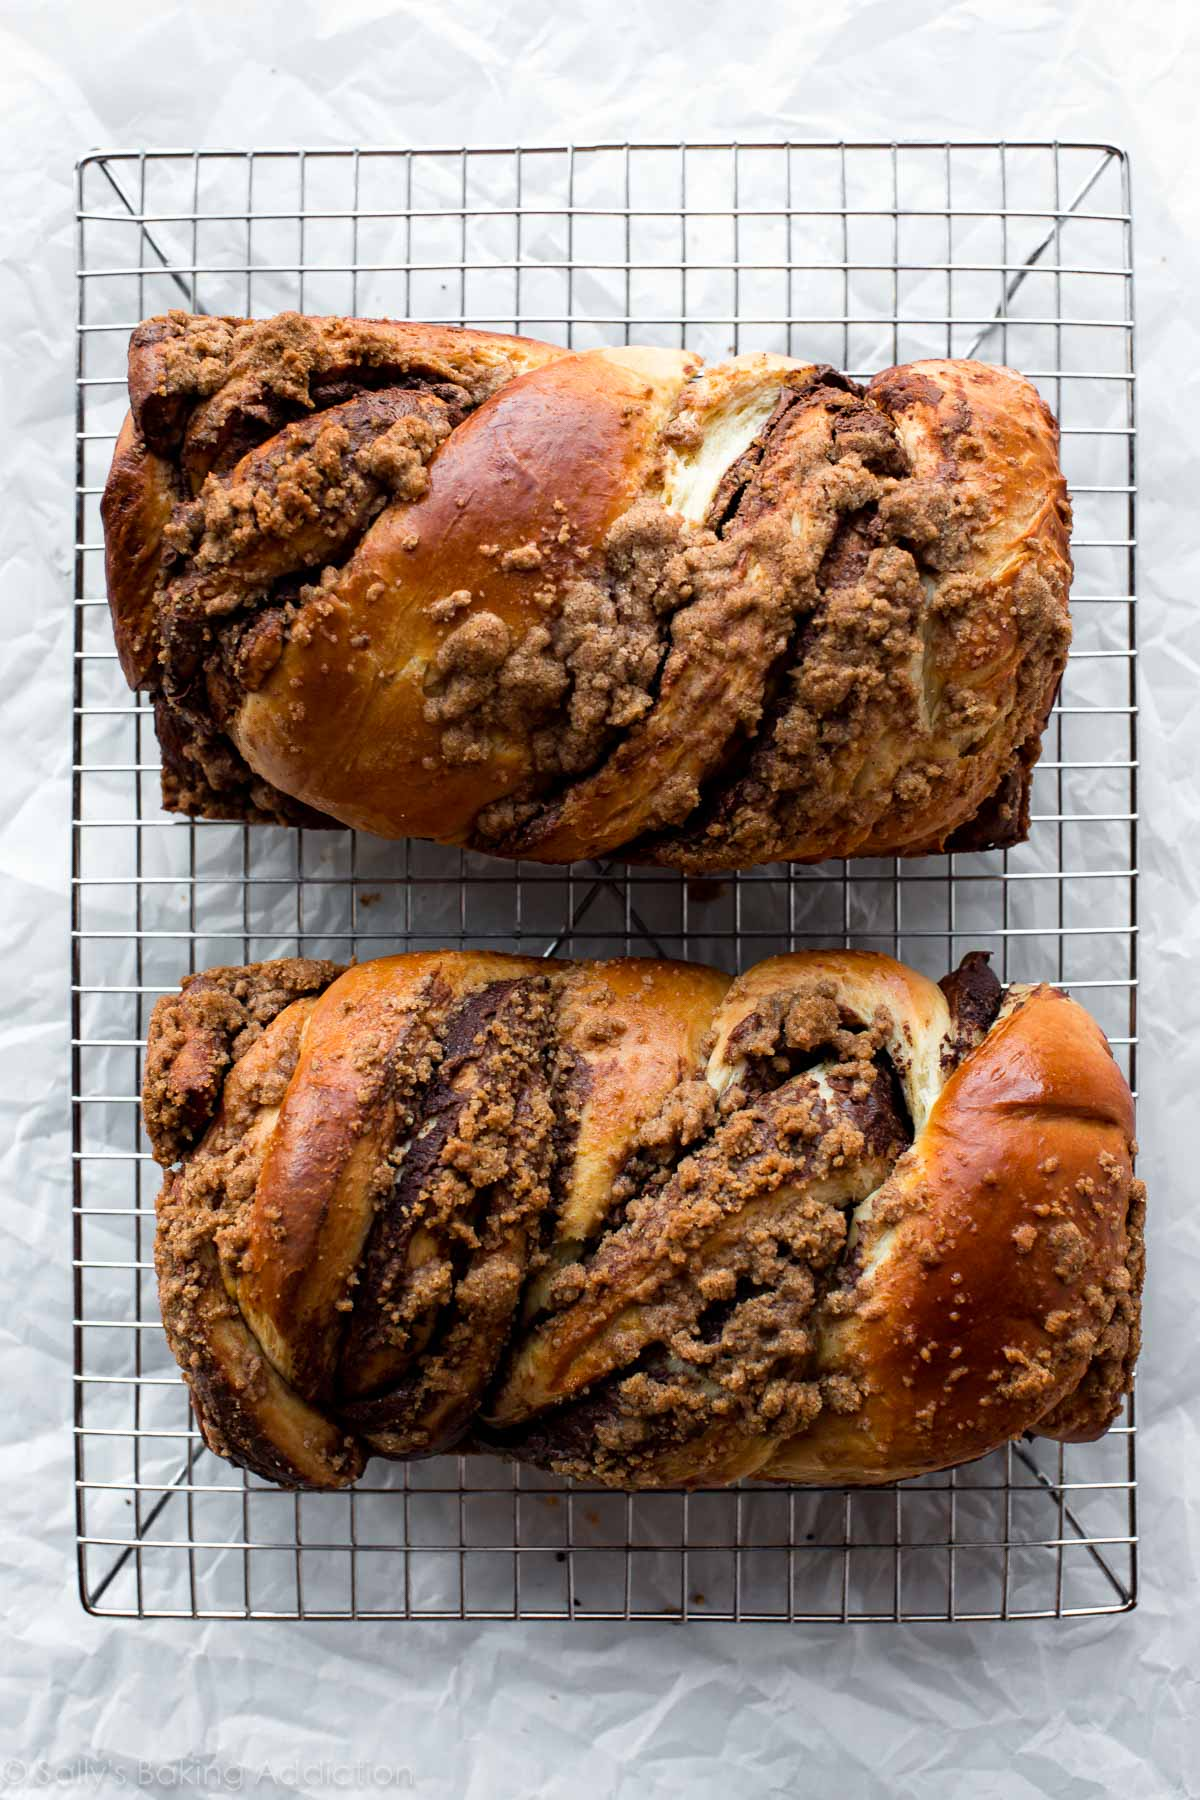 Deliciously sweet and addictive bread swirled with Nutella and topped with buttery cinnamon crumbles! Nutella babka recipe on sallysbakingaddiction.com